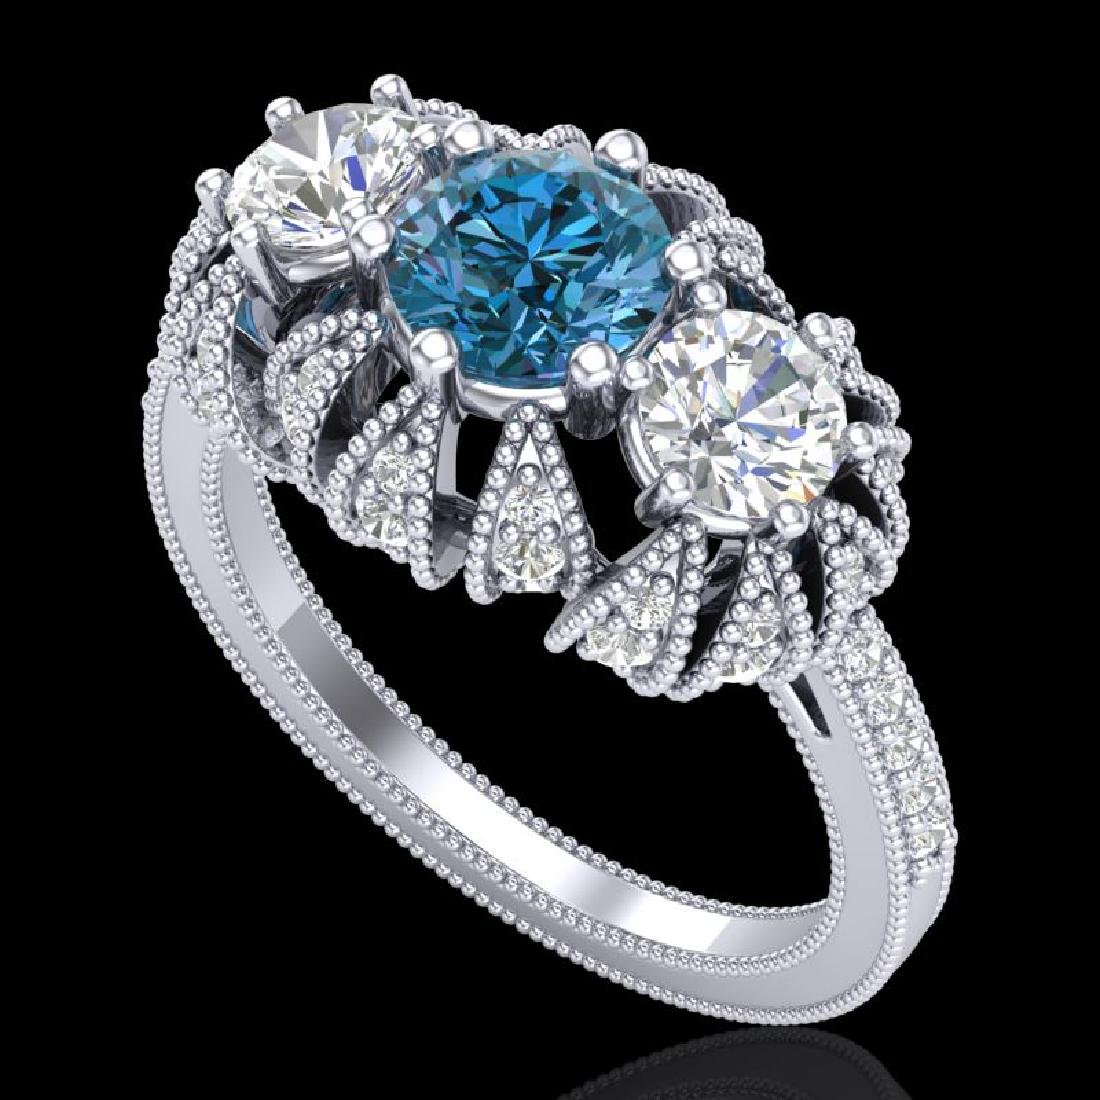 2.26 CTW Intense Blue Diamond Art Deco Micro Pave 3